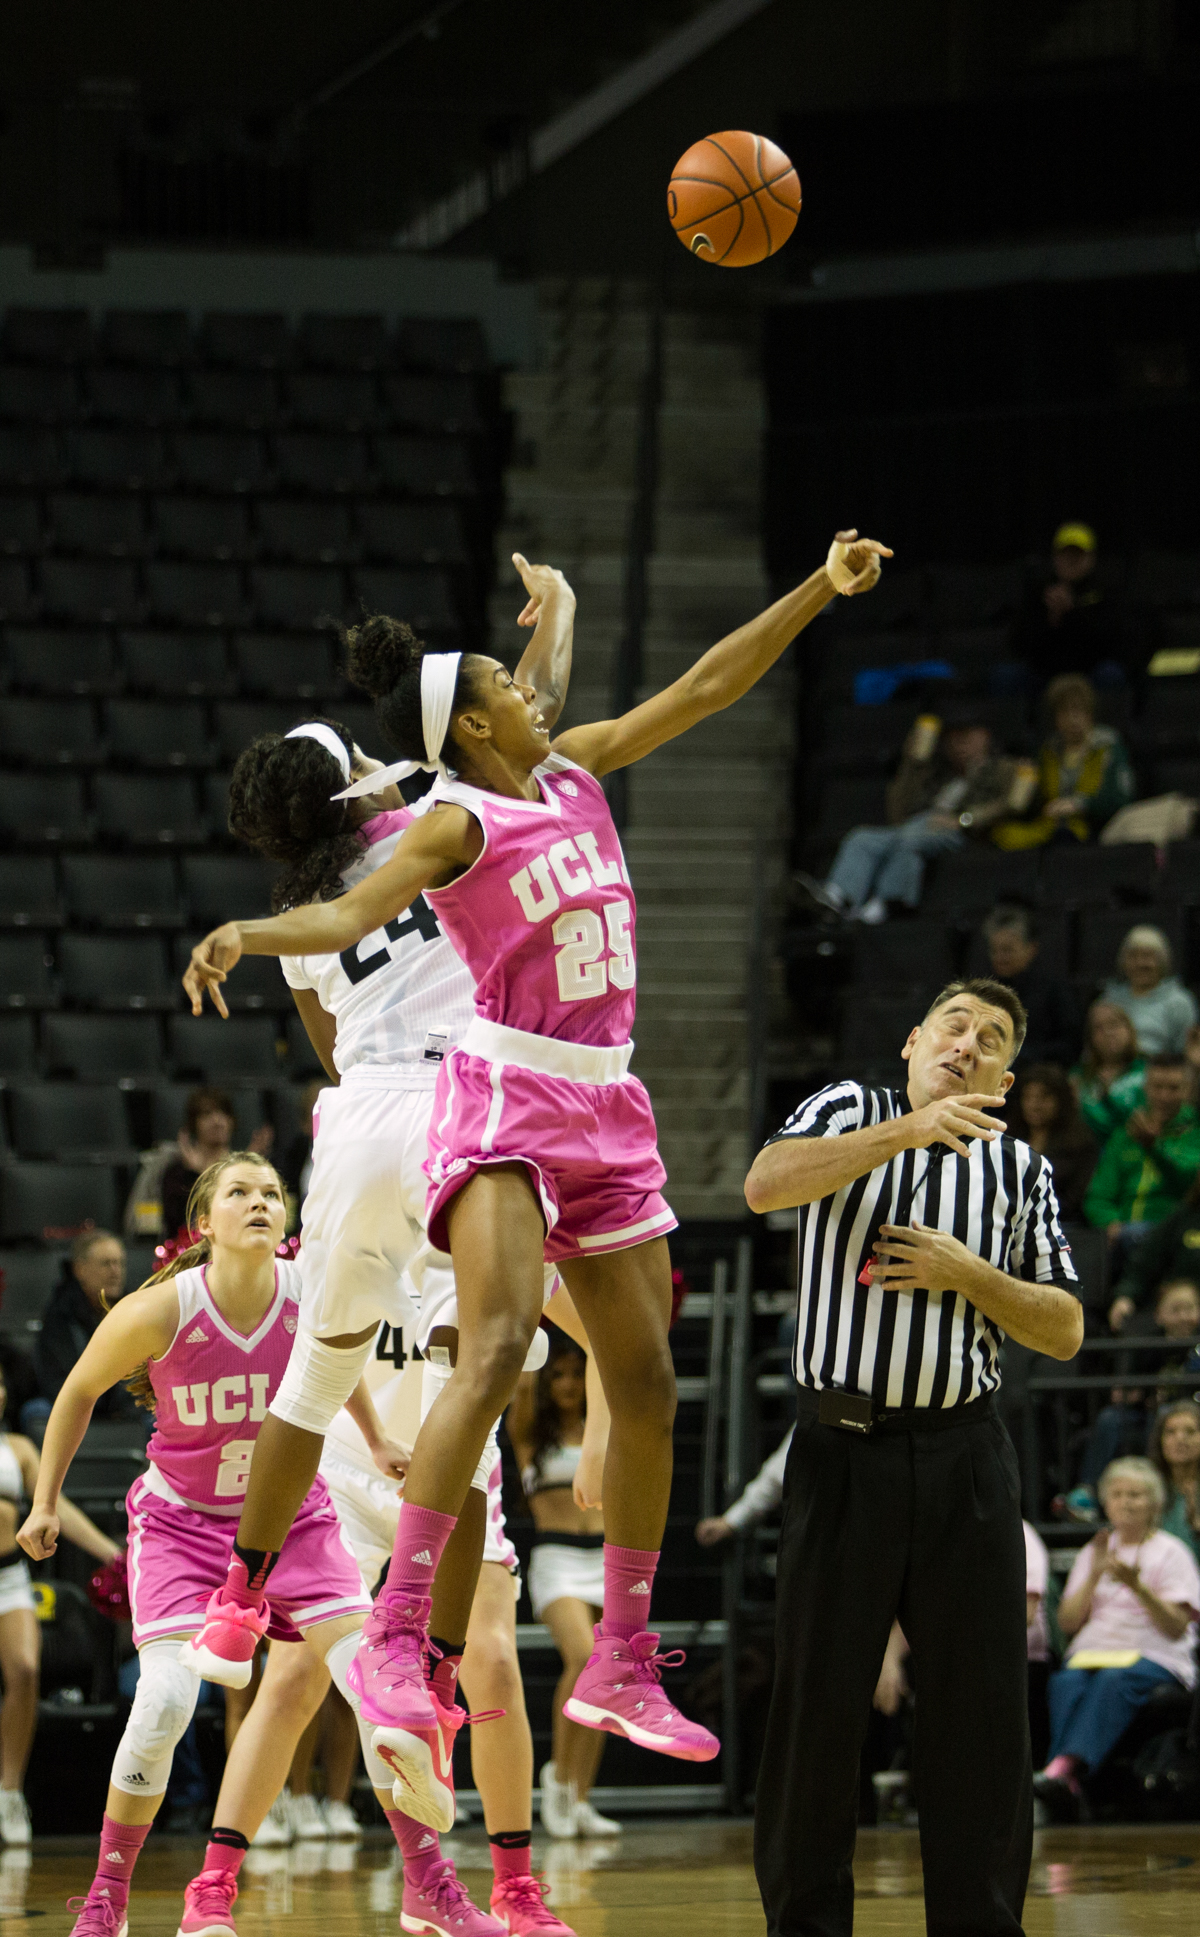 Oregon Ducks forward Ruthy Heard (#24) and UCLA forward Monique Billings (#25) jump for the tip off. The Oregon Ducks defeated the No. 15 UCLA Bruins 84-75 Friday evening at Matthew Knight Arena in Eugene, Oregon.  Photo by Duncan Moore, Oregon News Lab